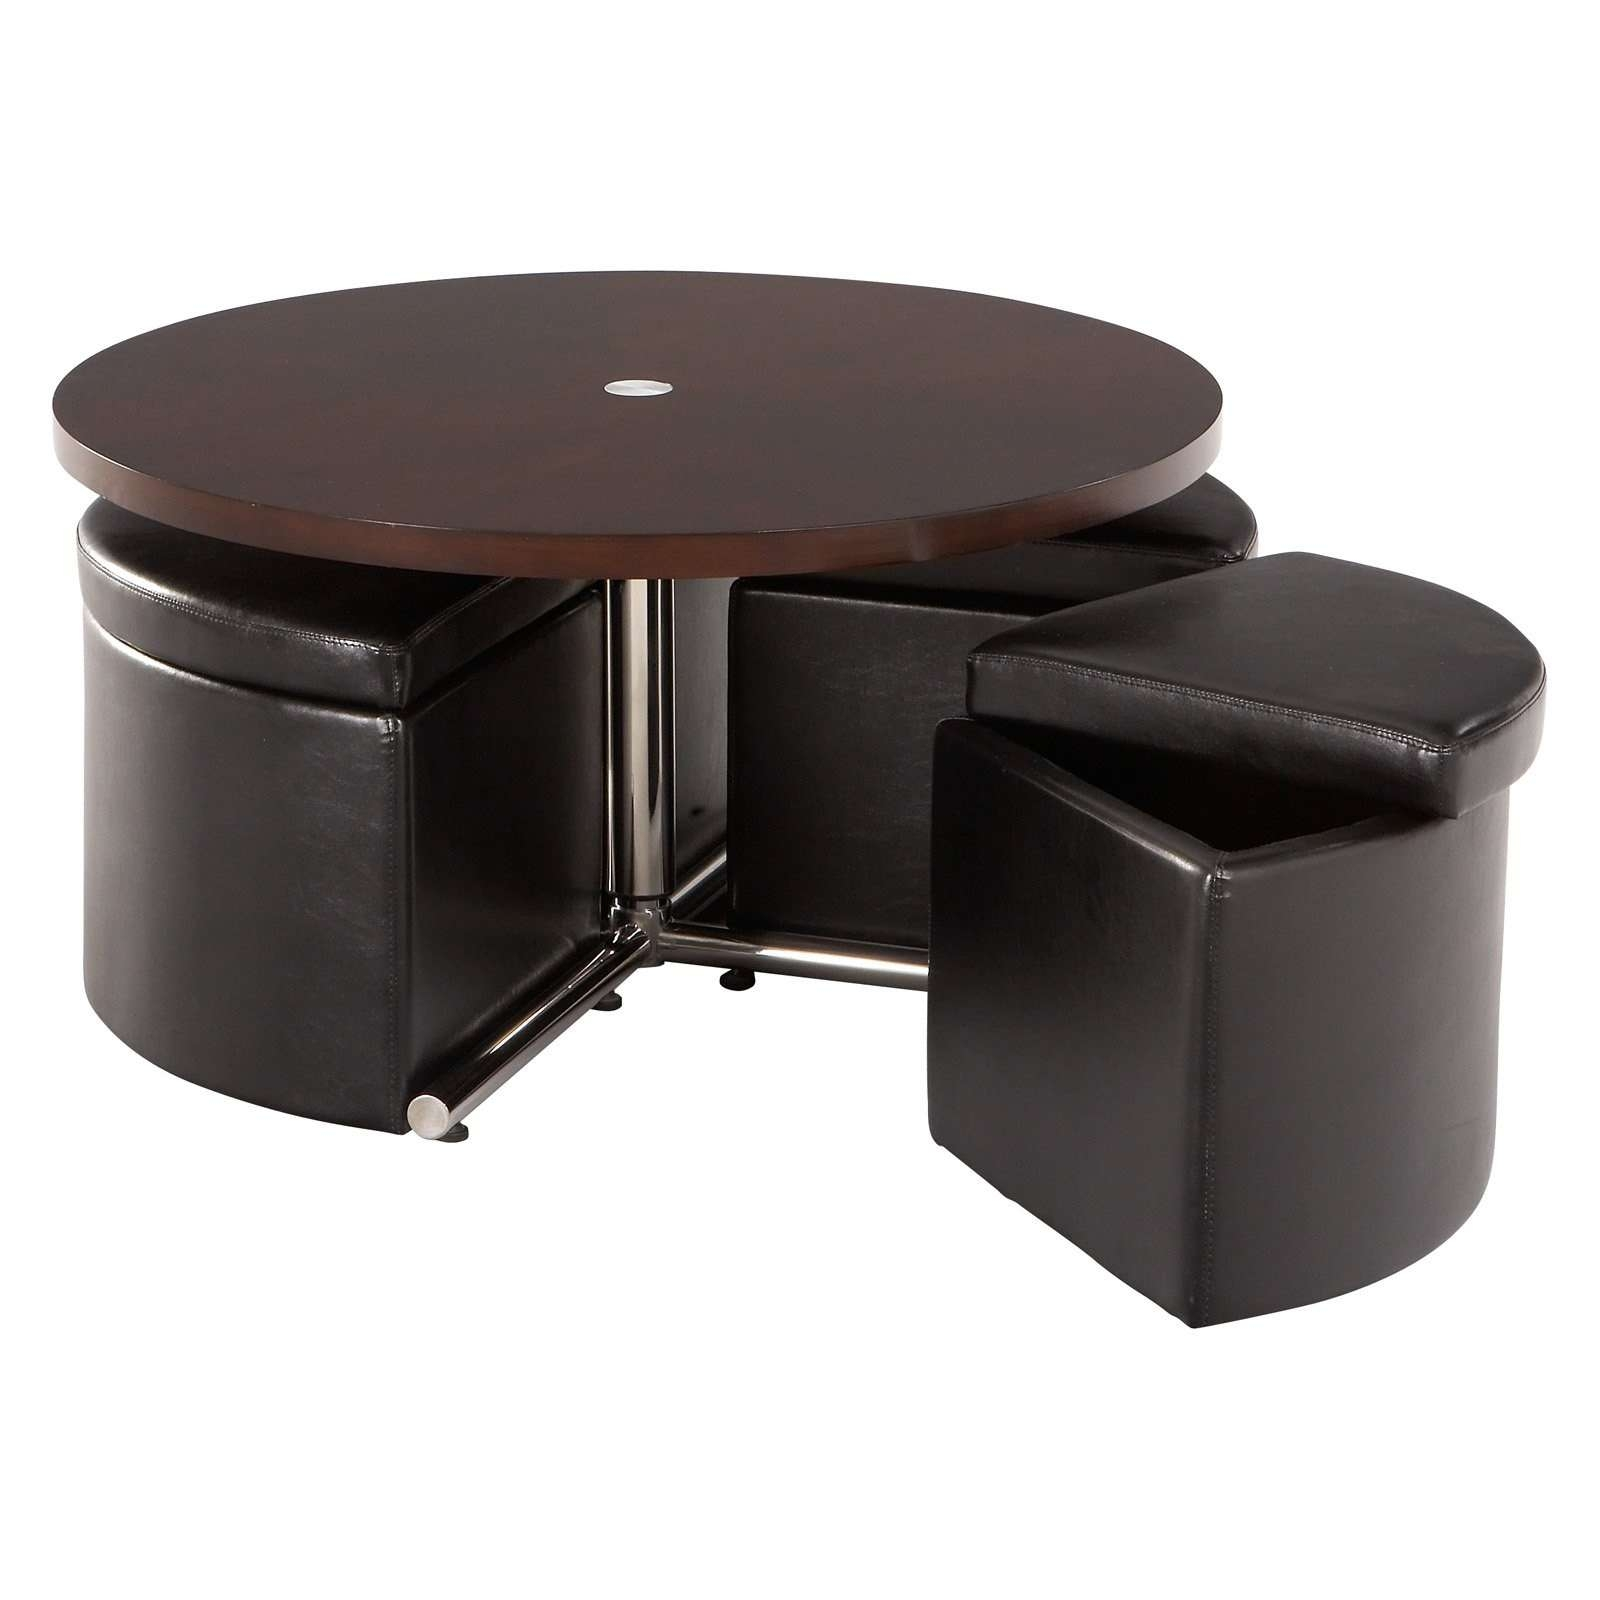 Coffee Table, Round Coffee Table With Seats Underneath The Round For Well Known Coffee Tables With Seating And Storage (View 10 of 20)